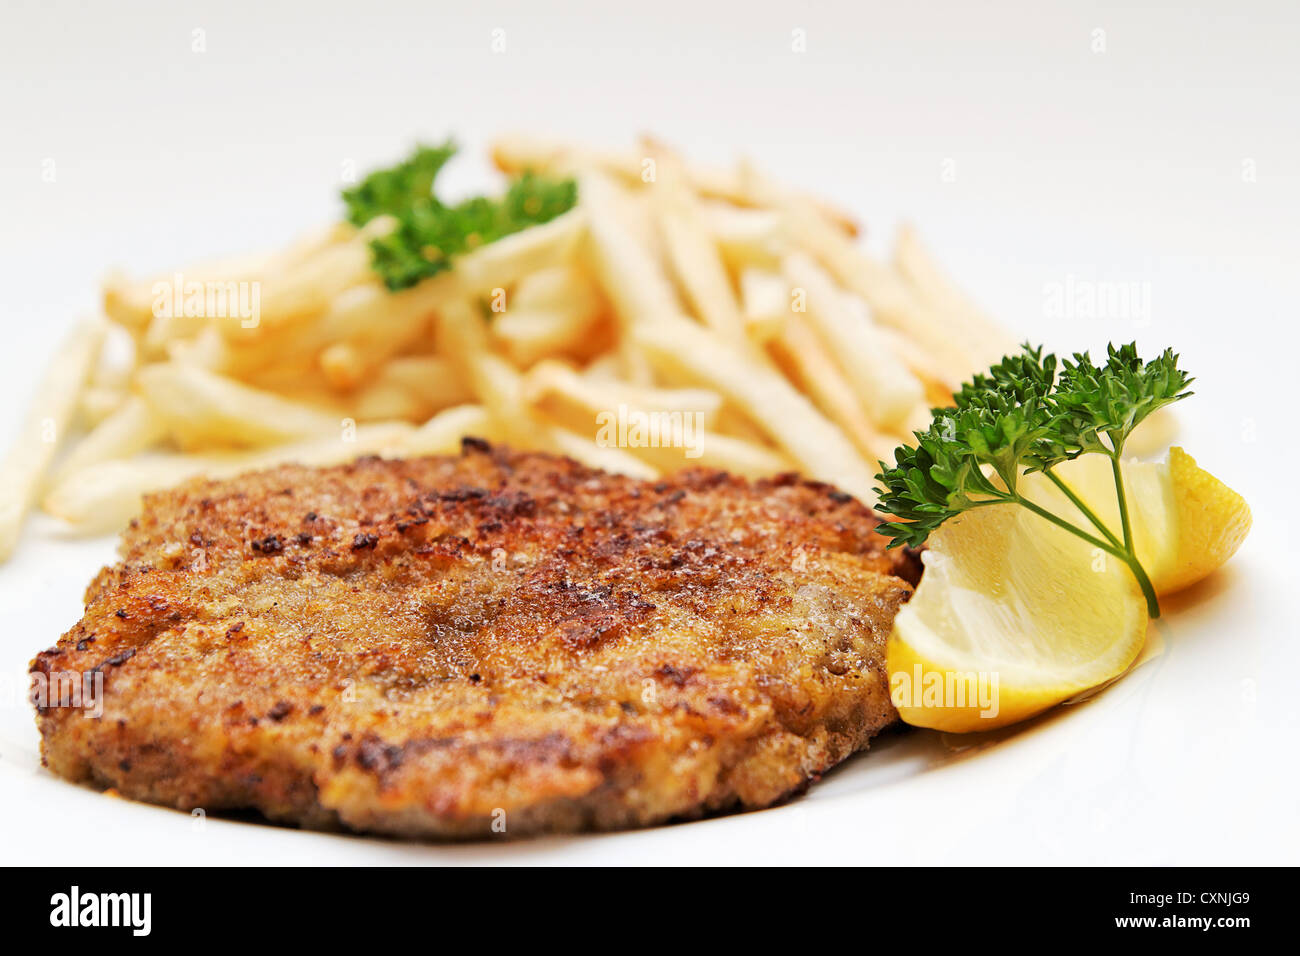 Beef cutlet / Wiener Schnitzel with french fries - Stock Image